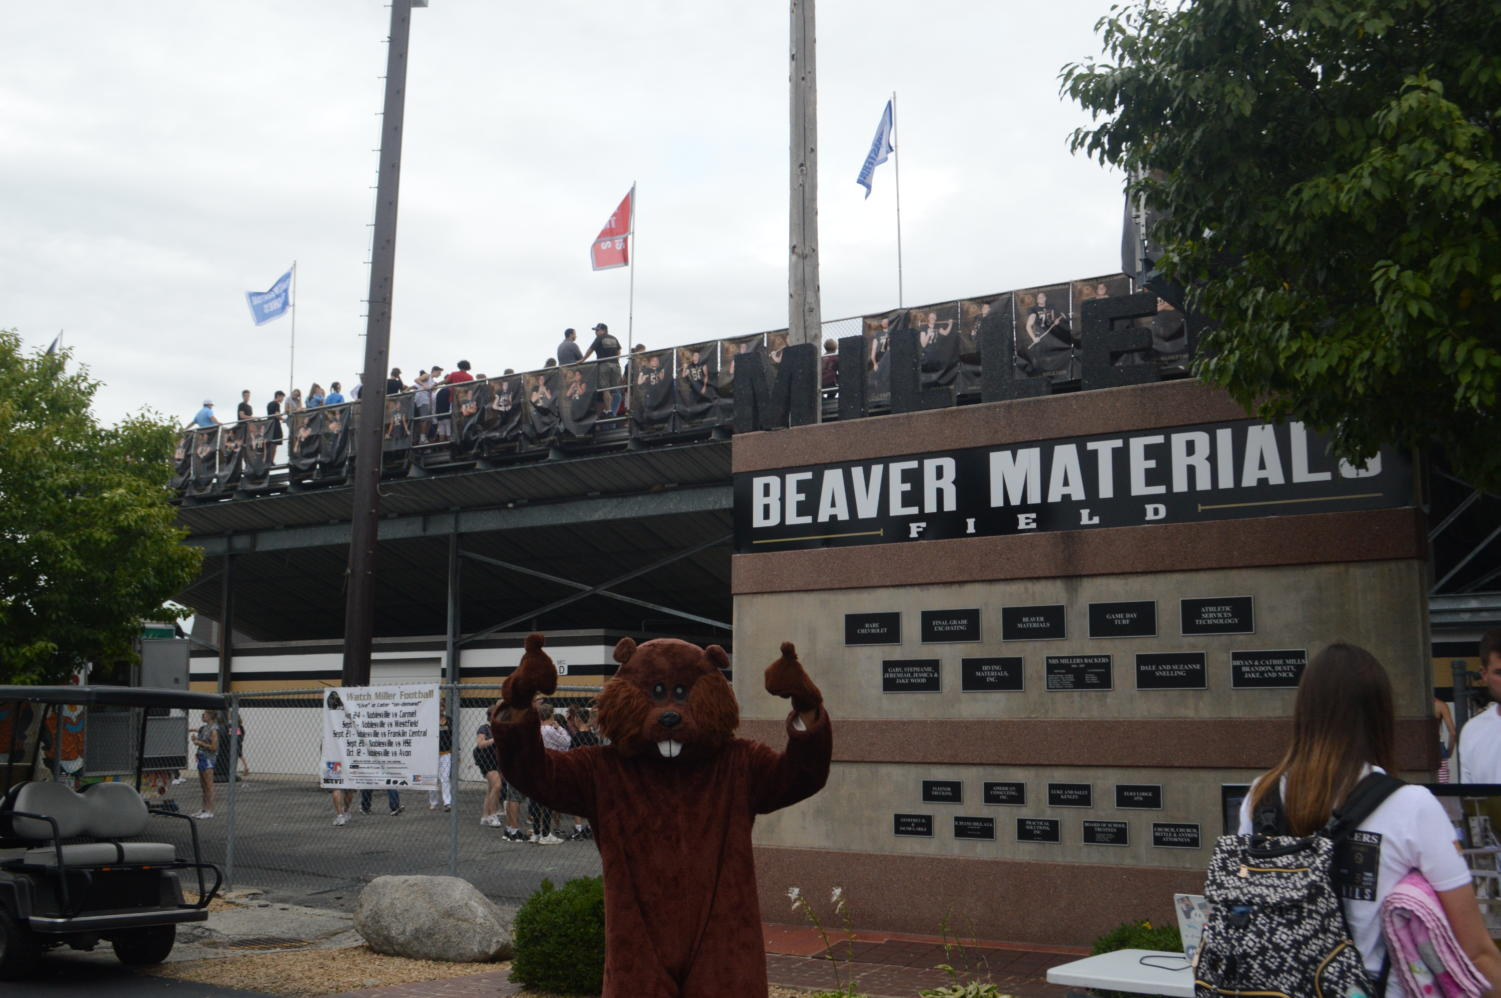 The Beaver Materials mascot stands outside Beaver Field. Beaver Materials was founded in 1947.